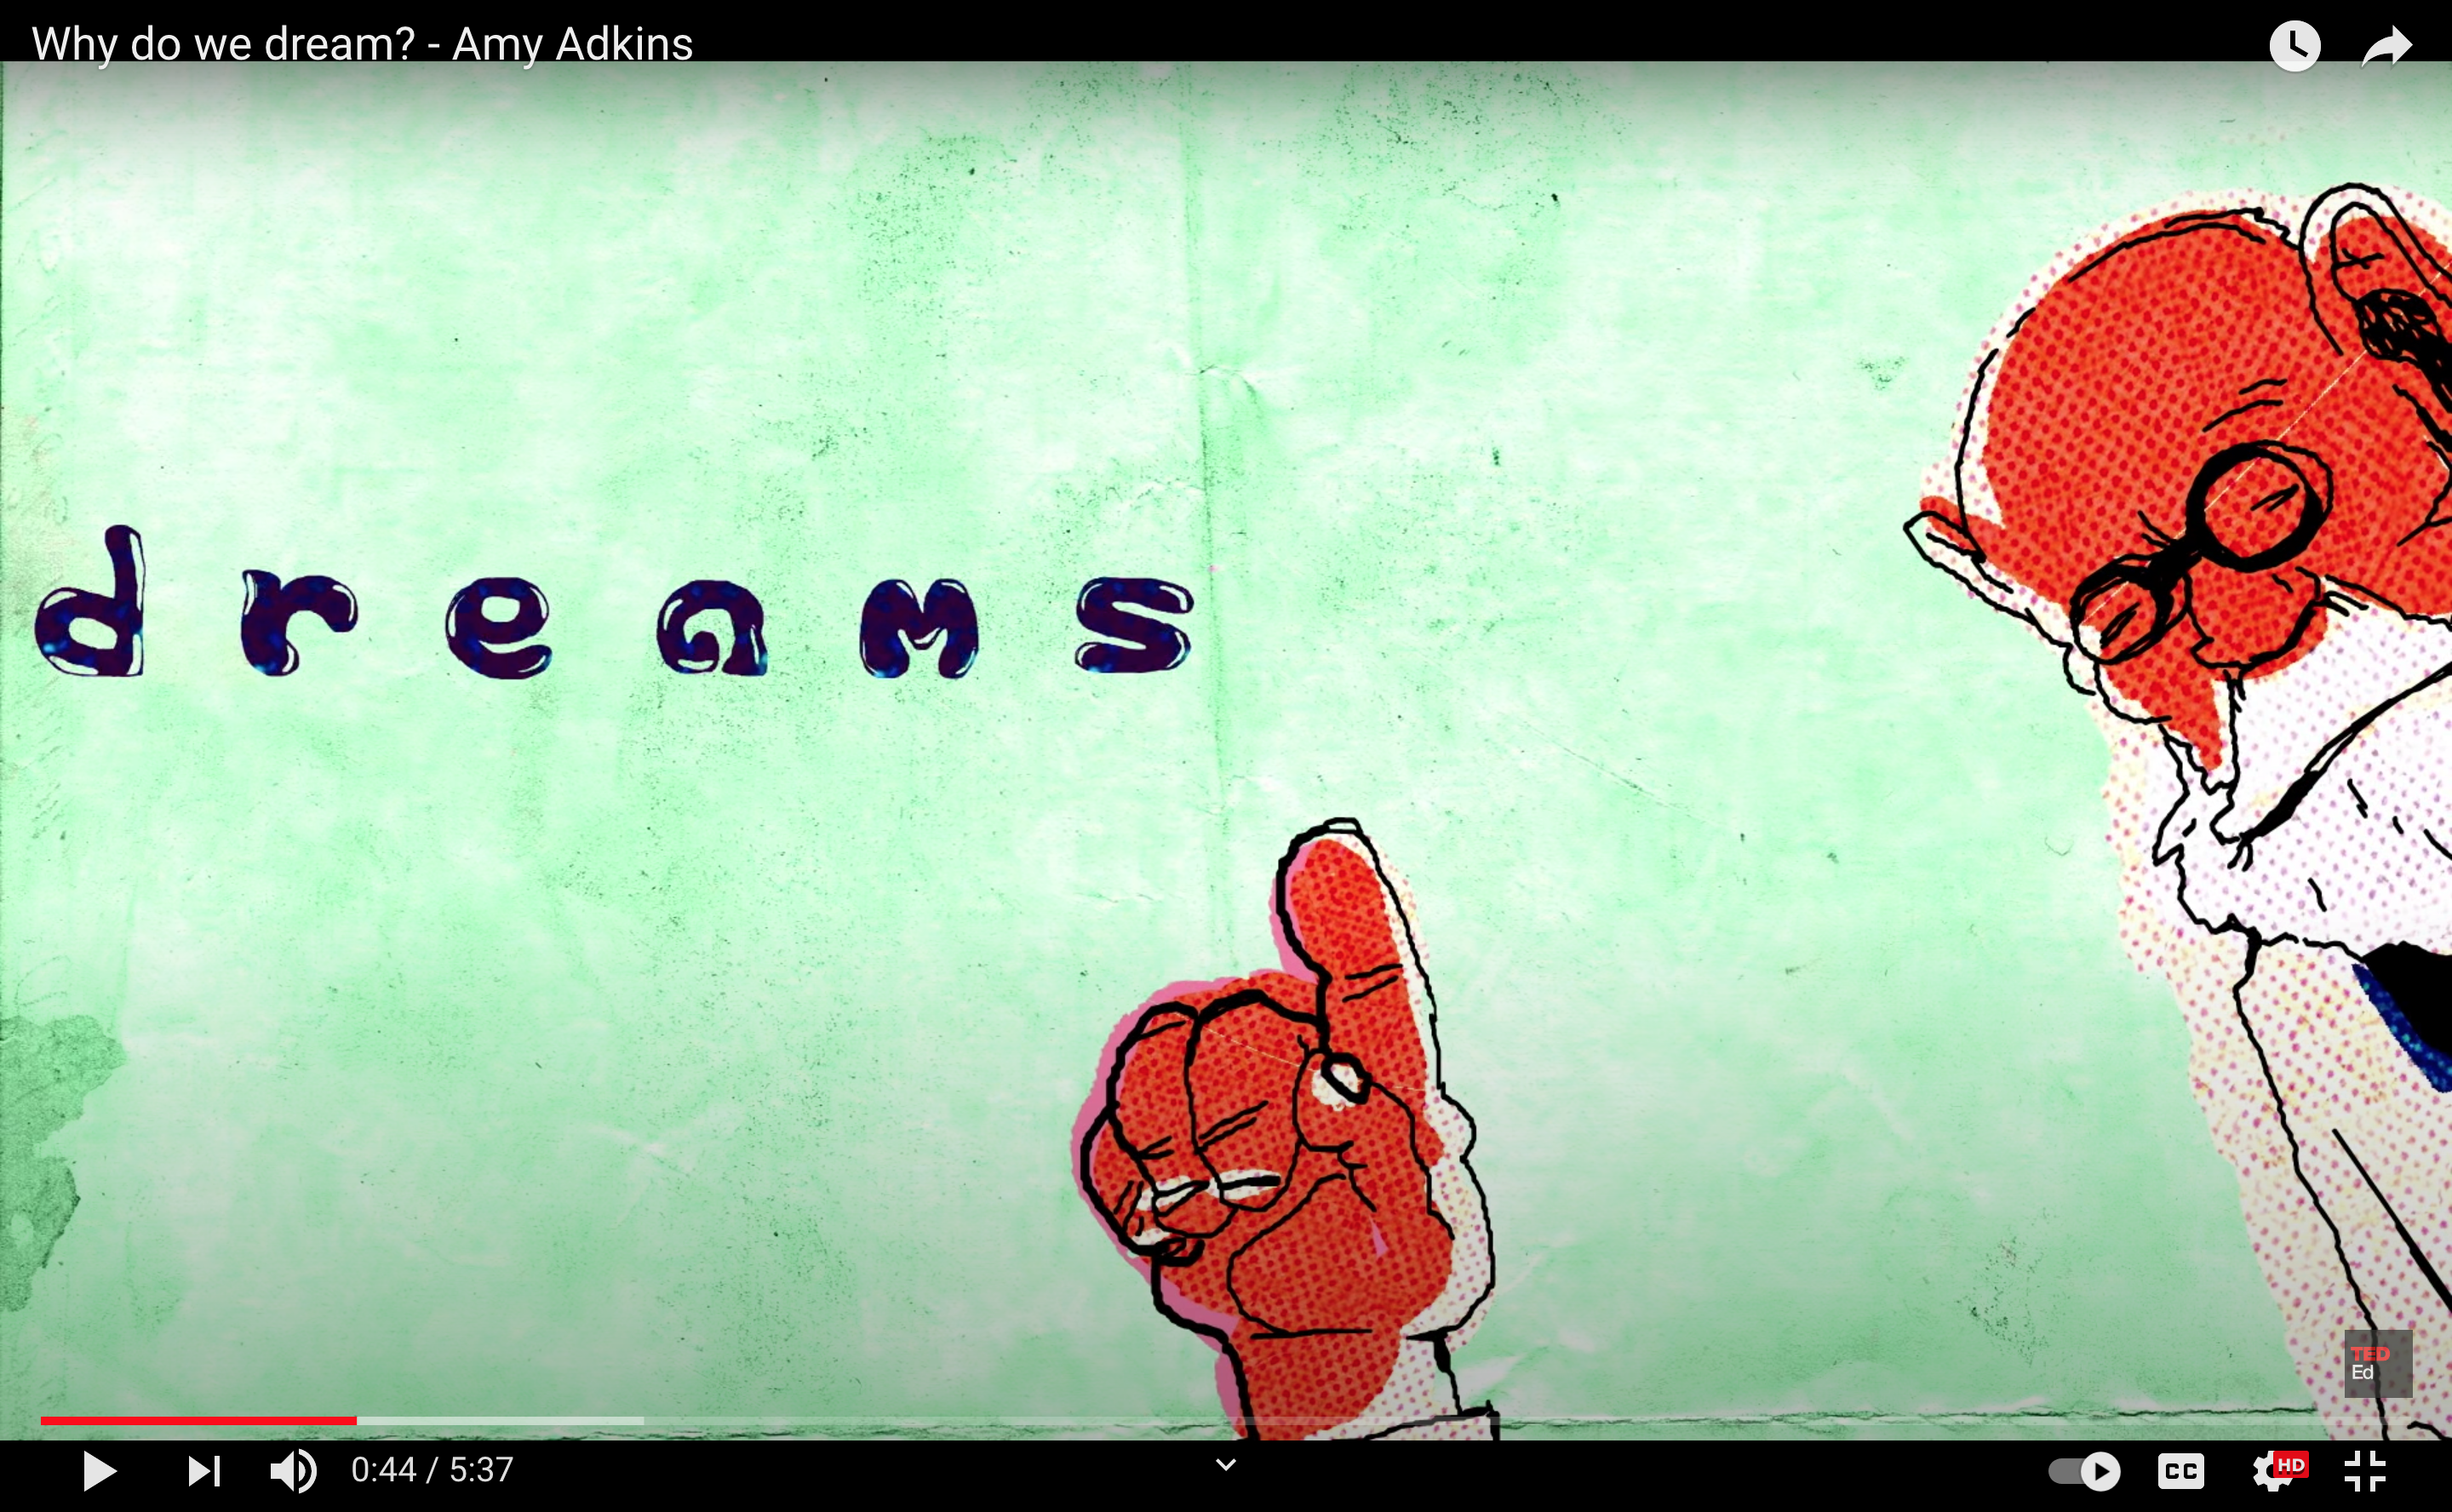 """Ted-Ed video """"Why do we dream?"""""""